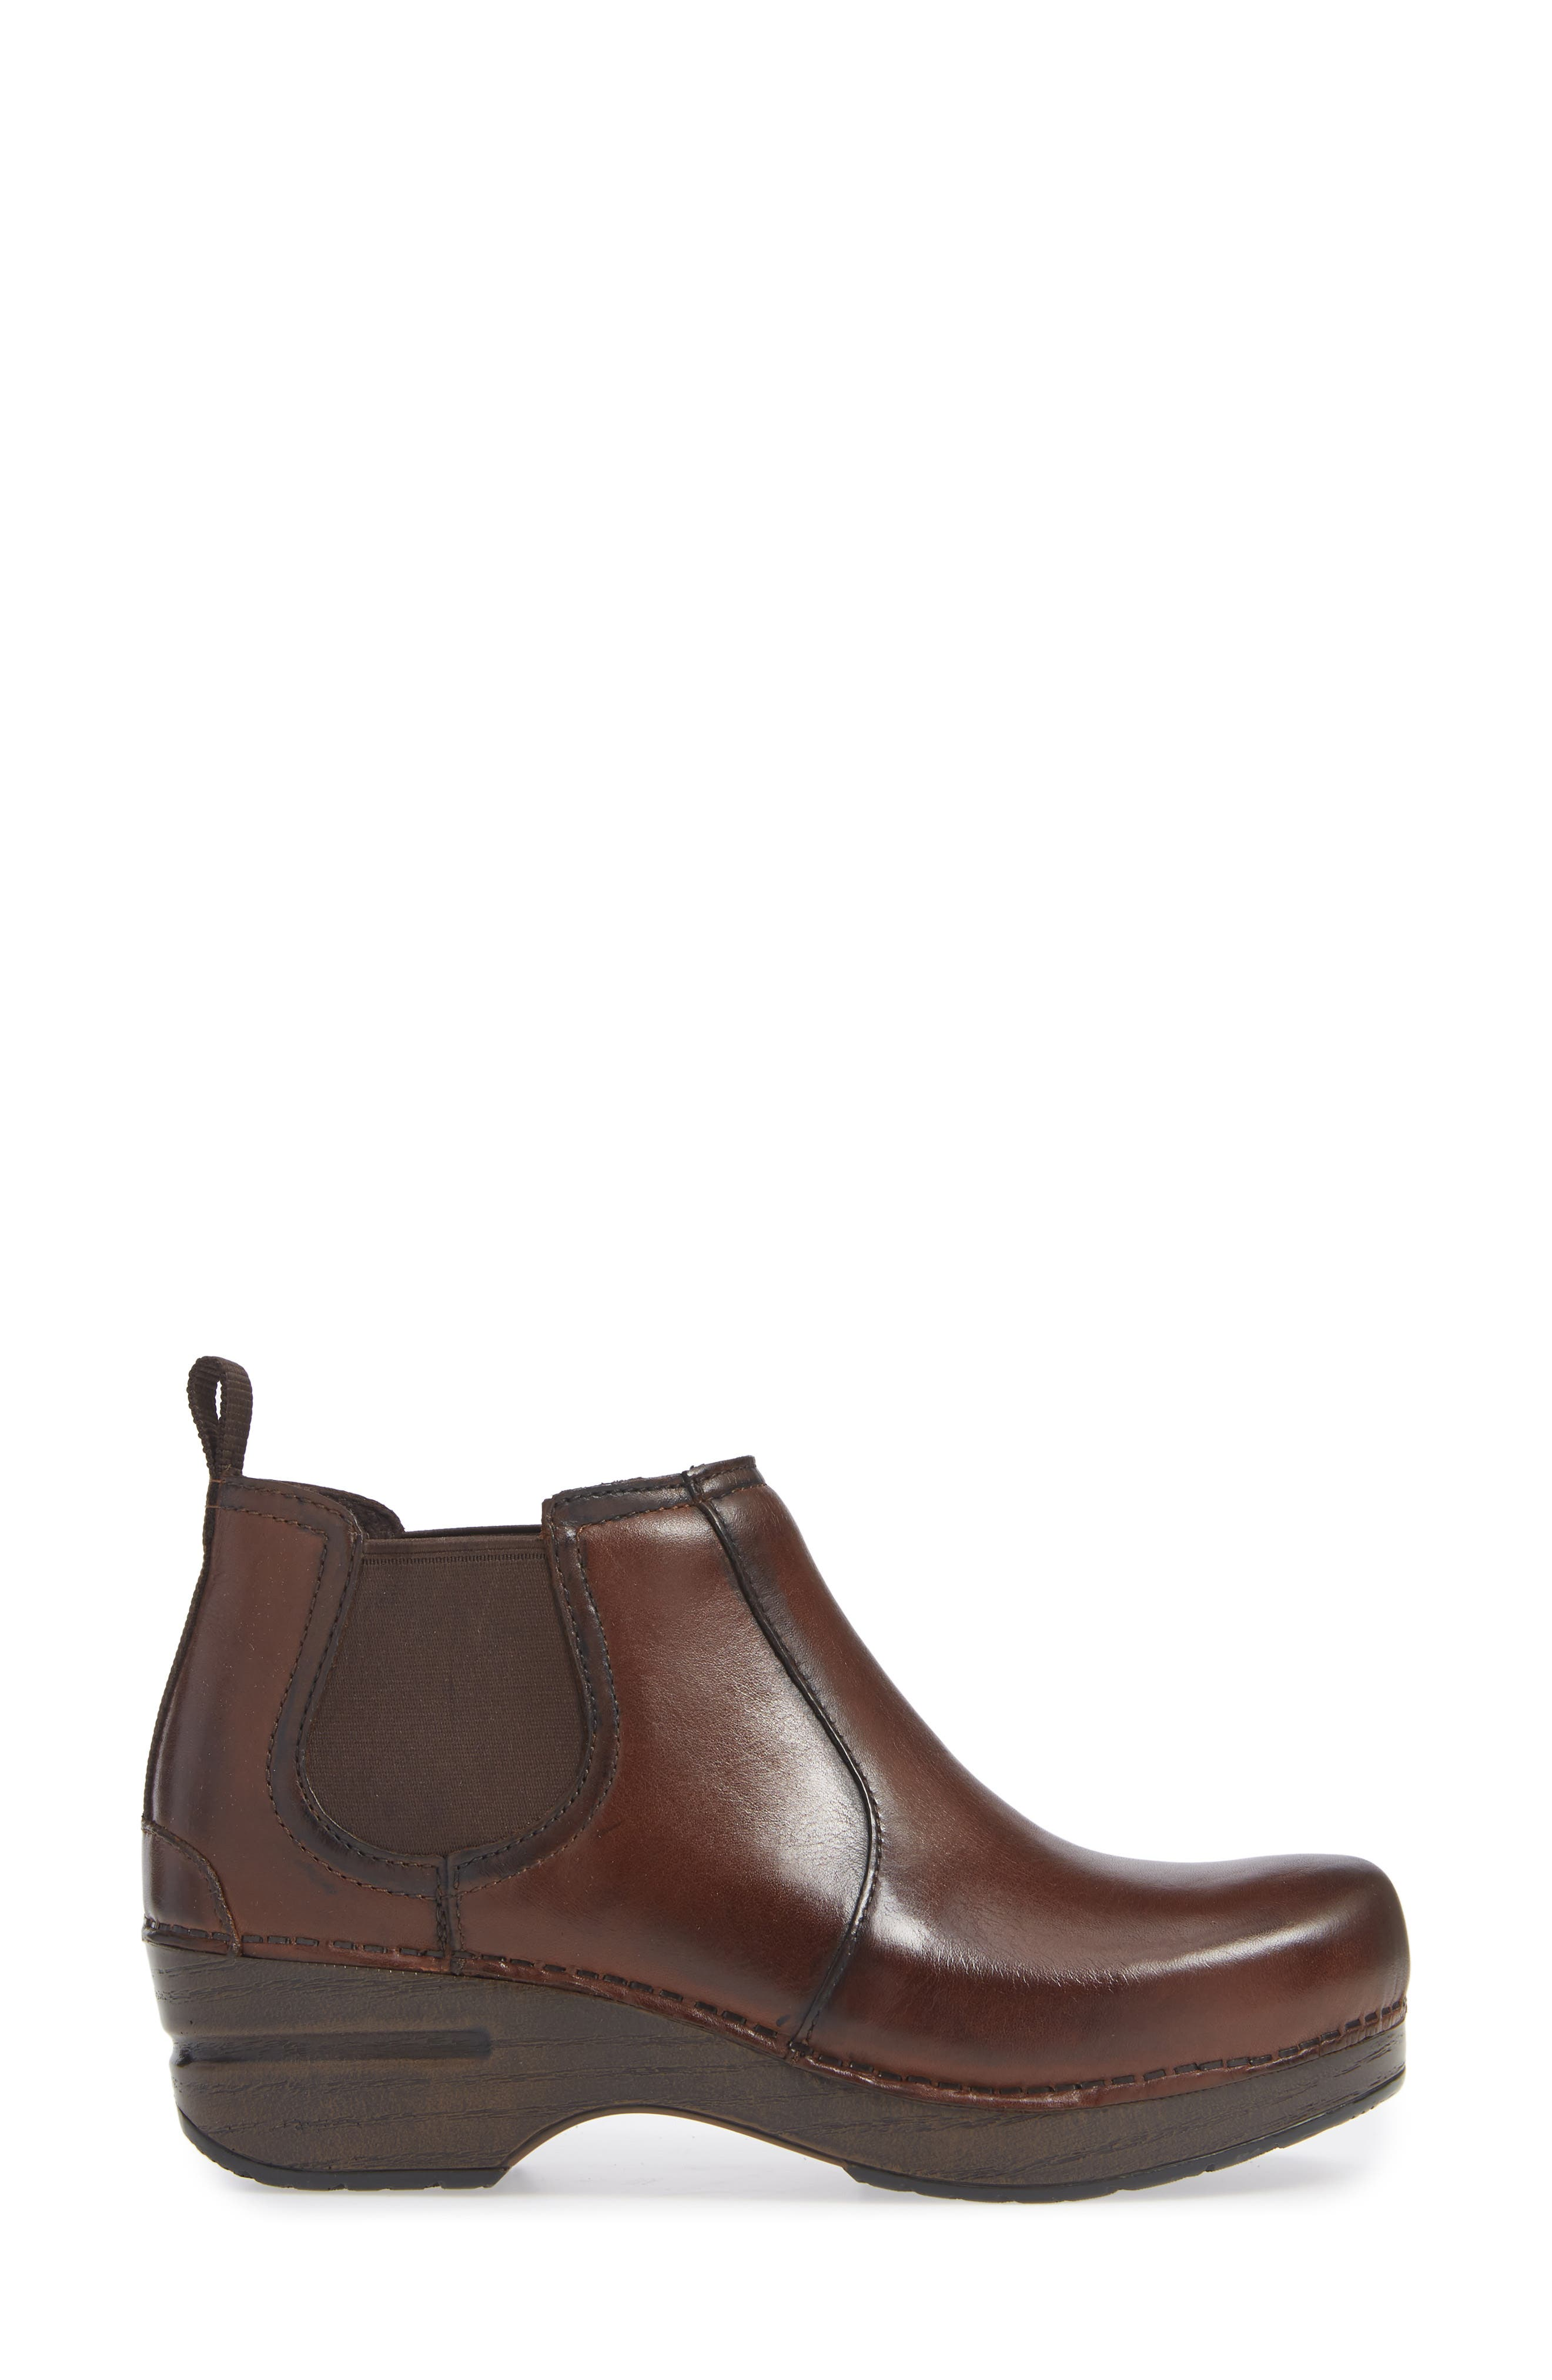 Frankie Bootie,                             Alternate thumbnail 3, color,                             BROWN LEATHER